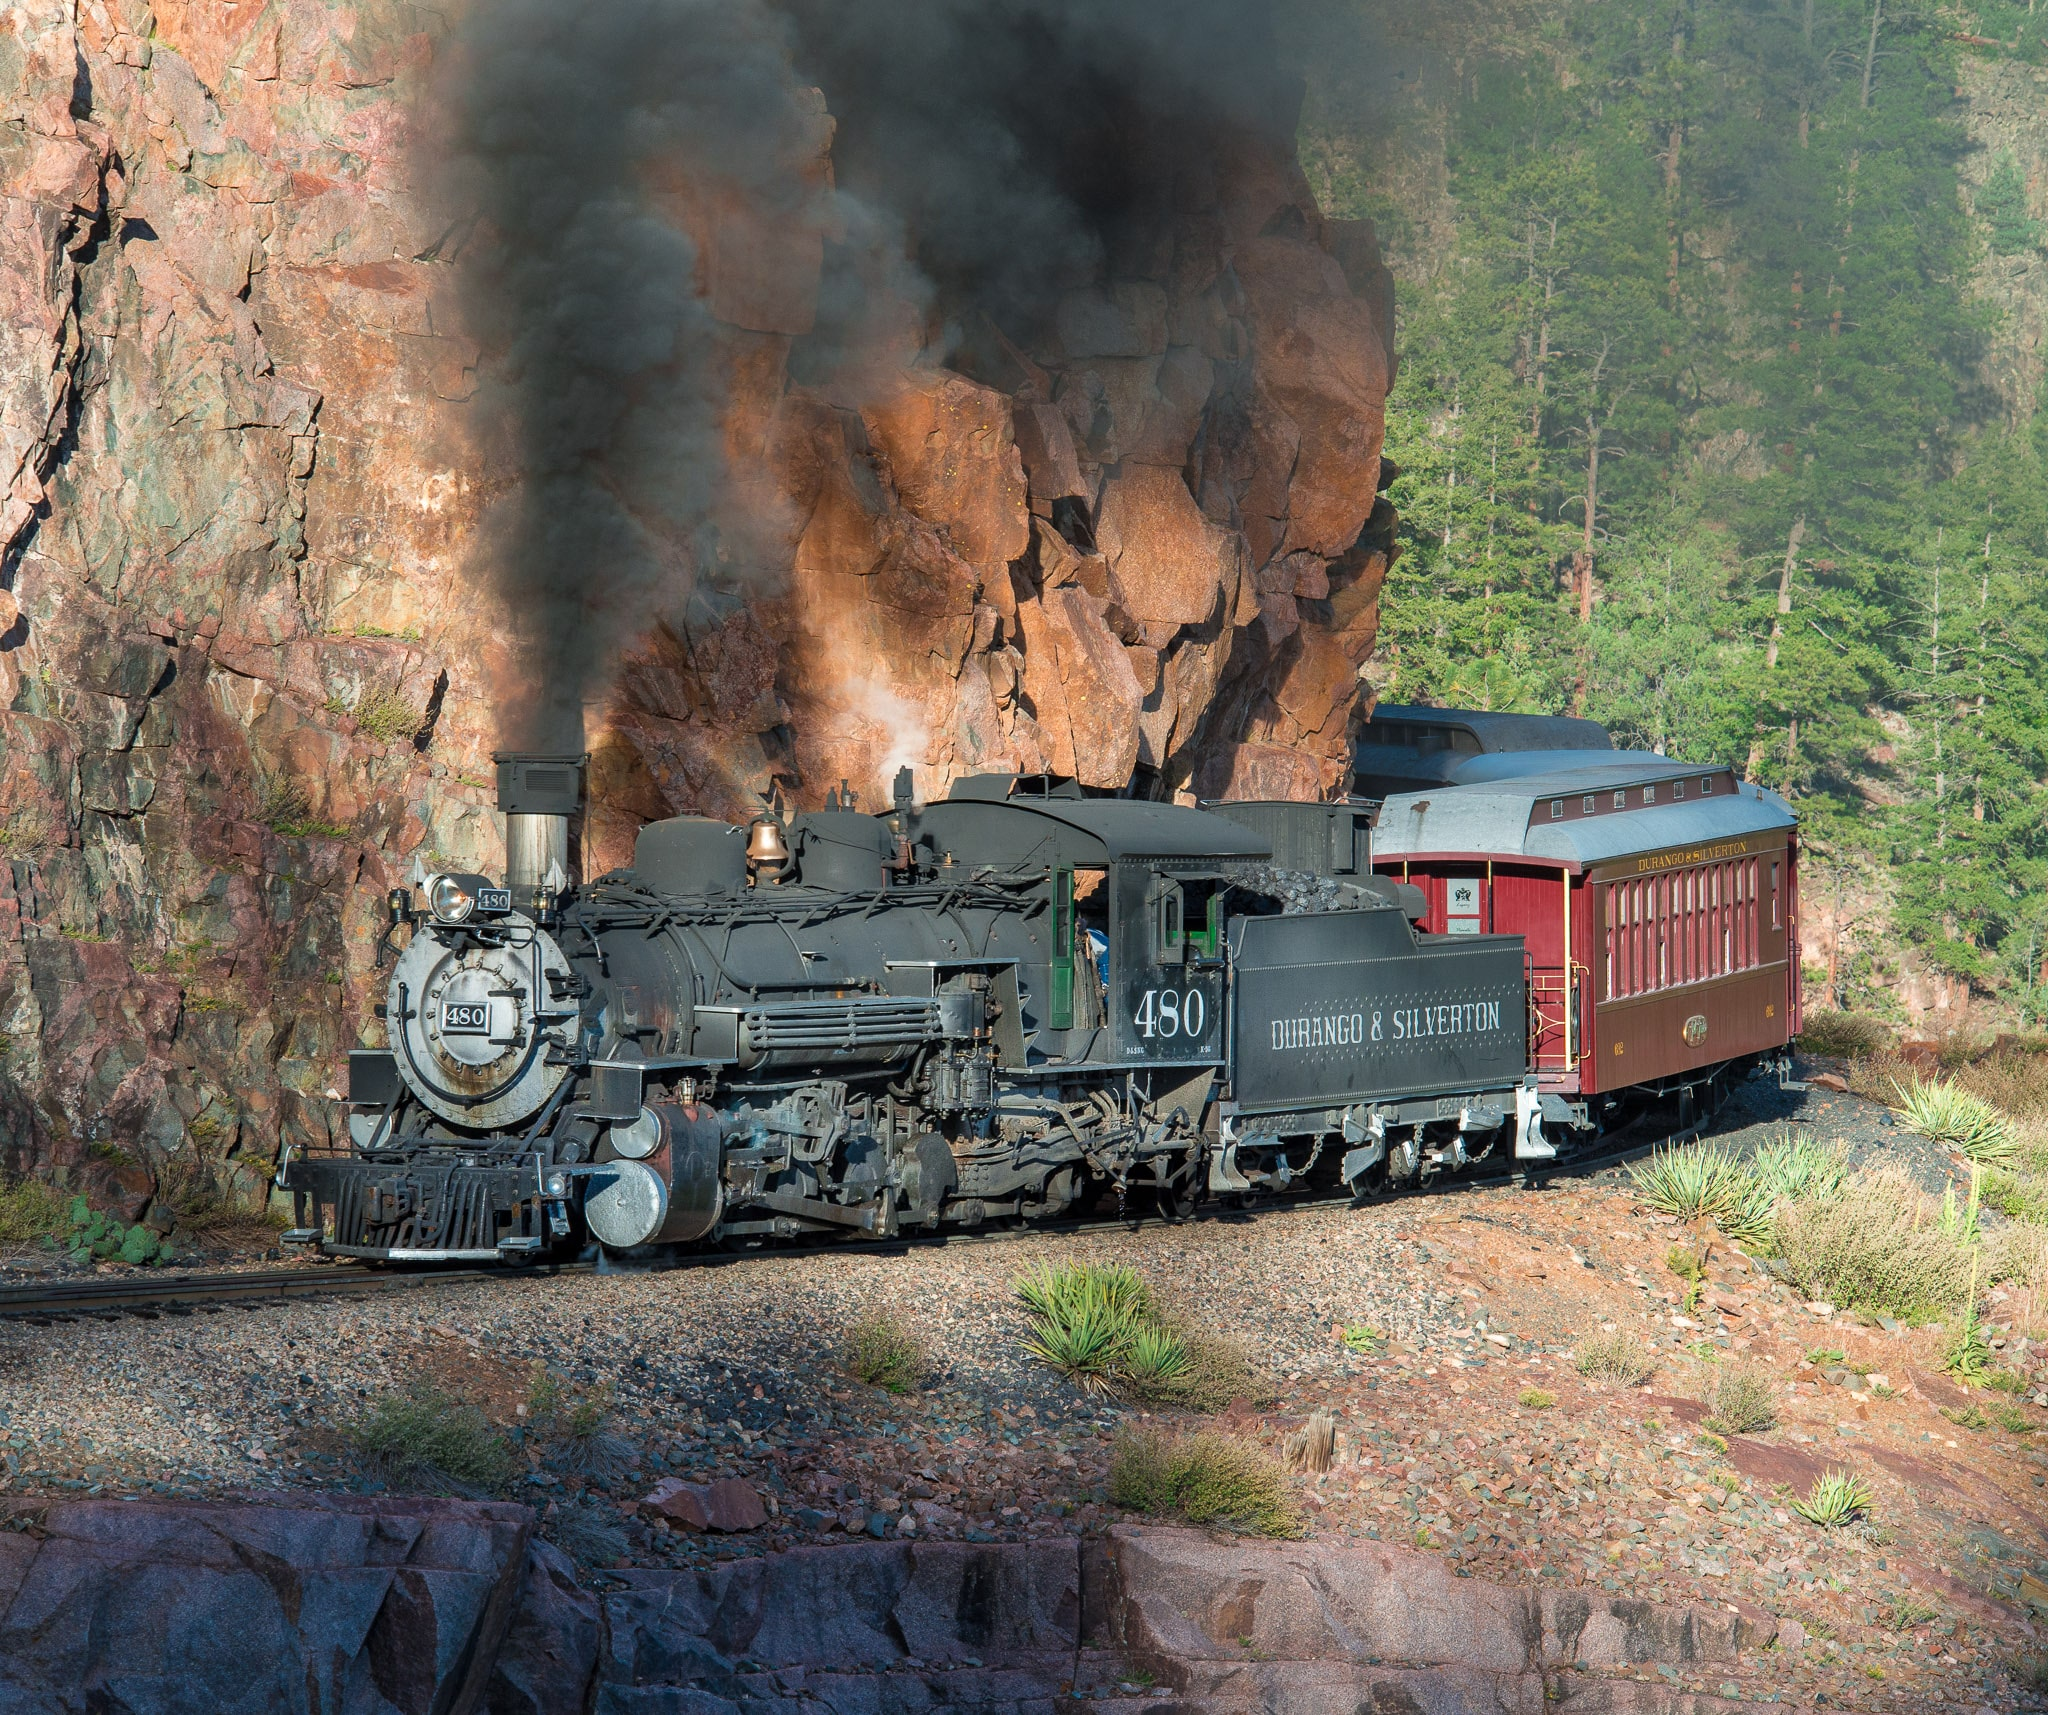 Durango & Silverton Railroad's narrow-gauge steam locomotive 480 comes around the bend pulling a train of historic passenger cars along the highline, parallel to the Animas River between Silverton and Durango, Colorado.